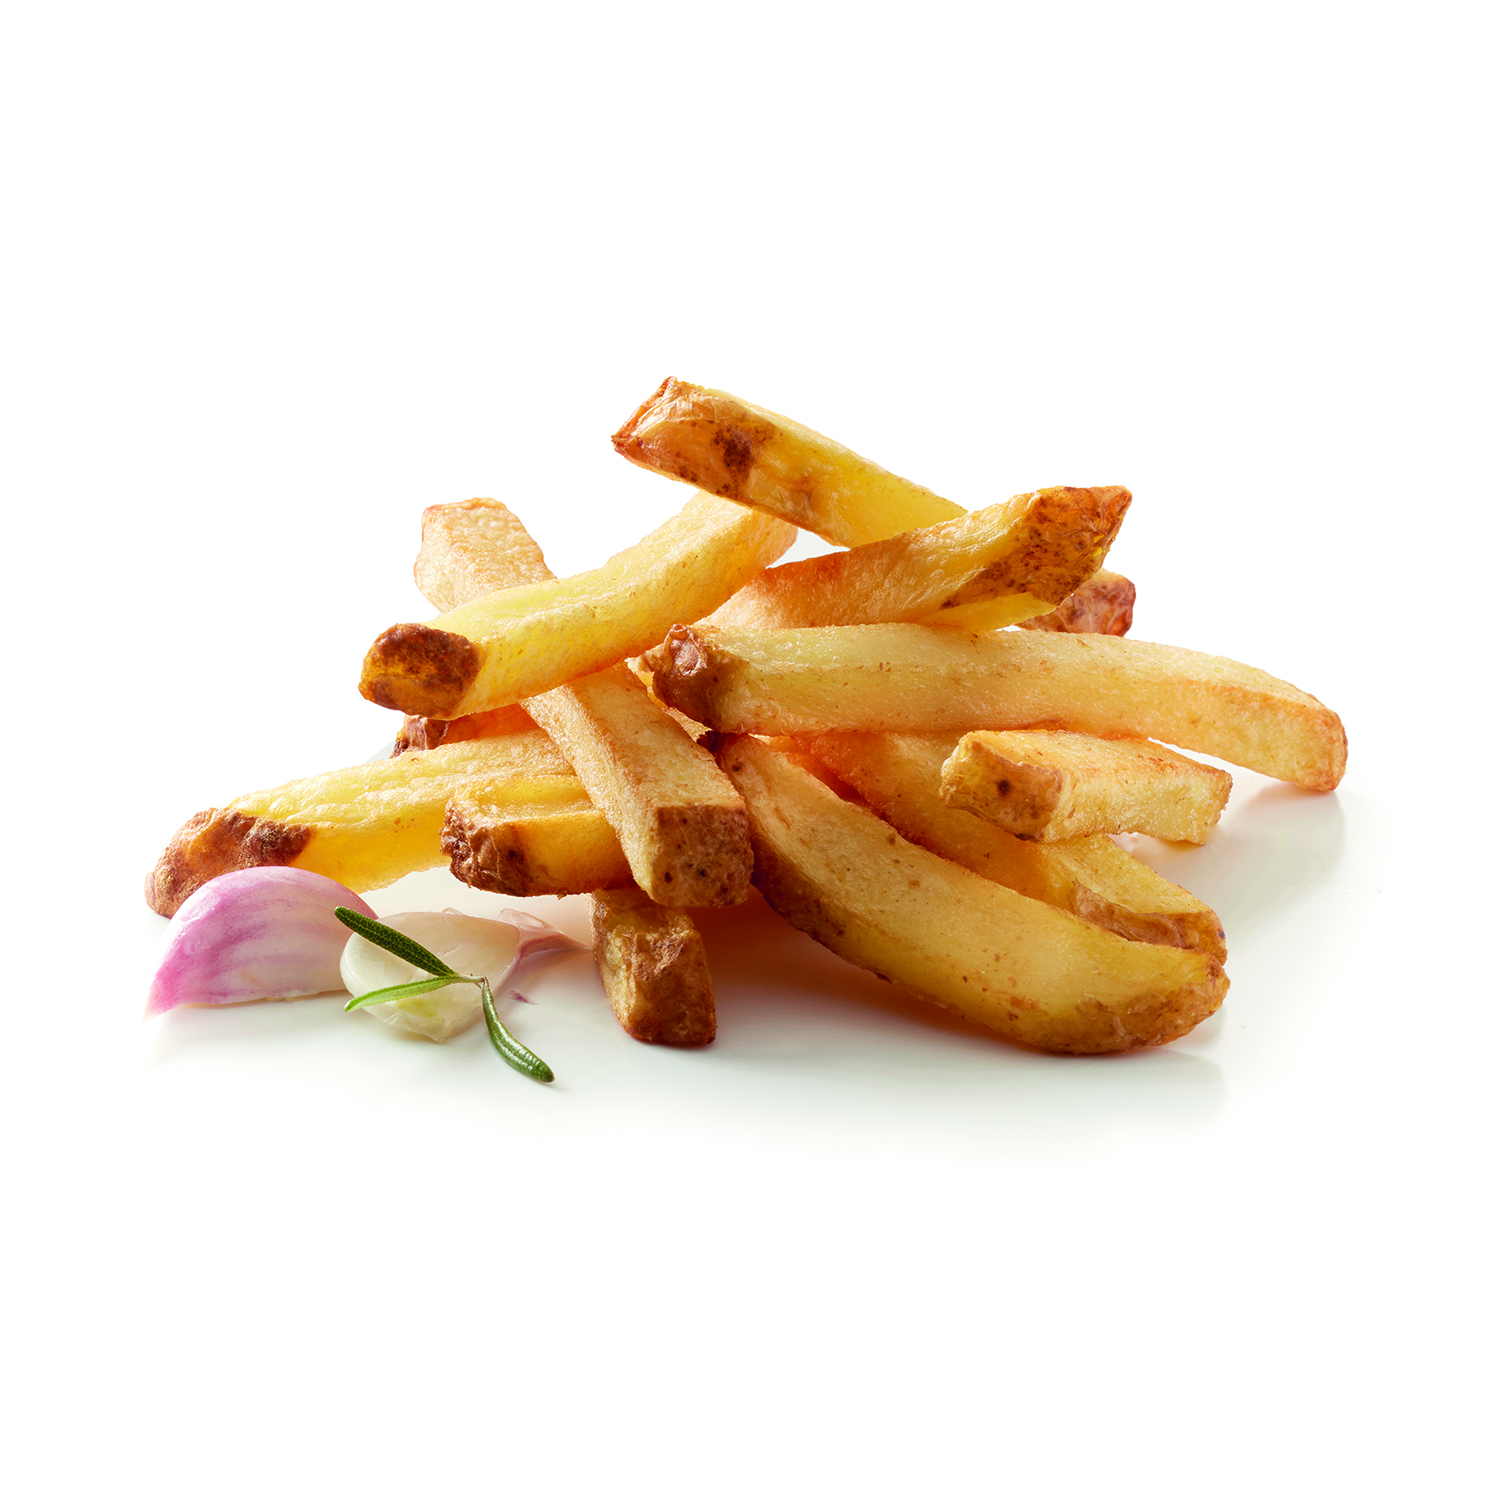 Schne-frost Rustico Frites 2500 g